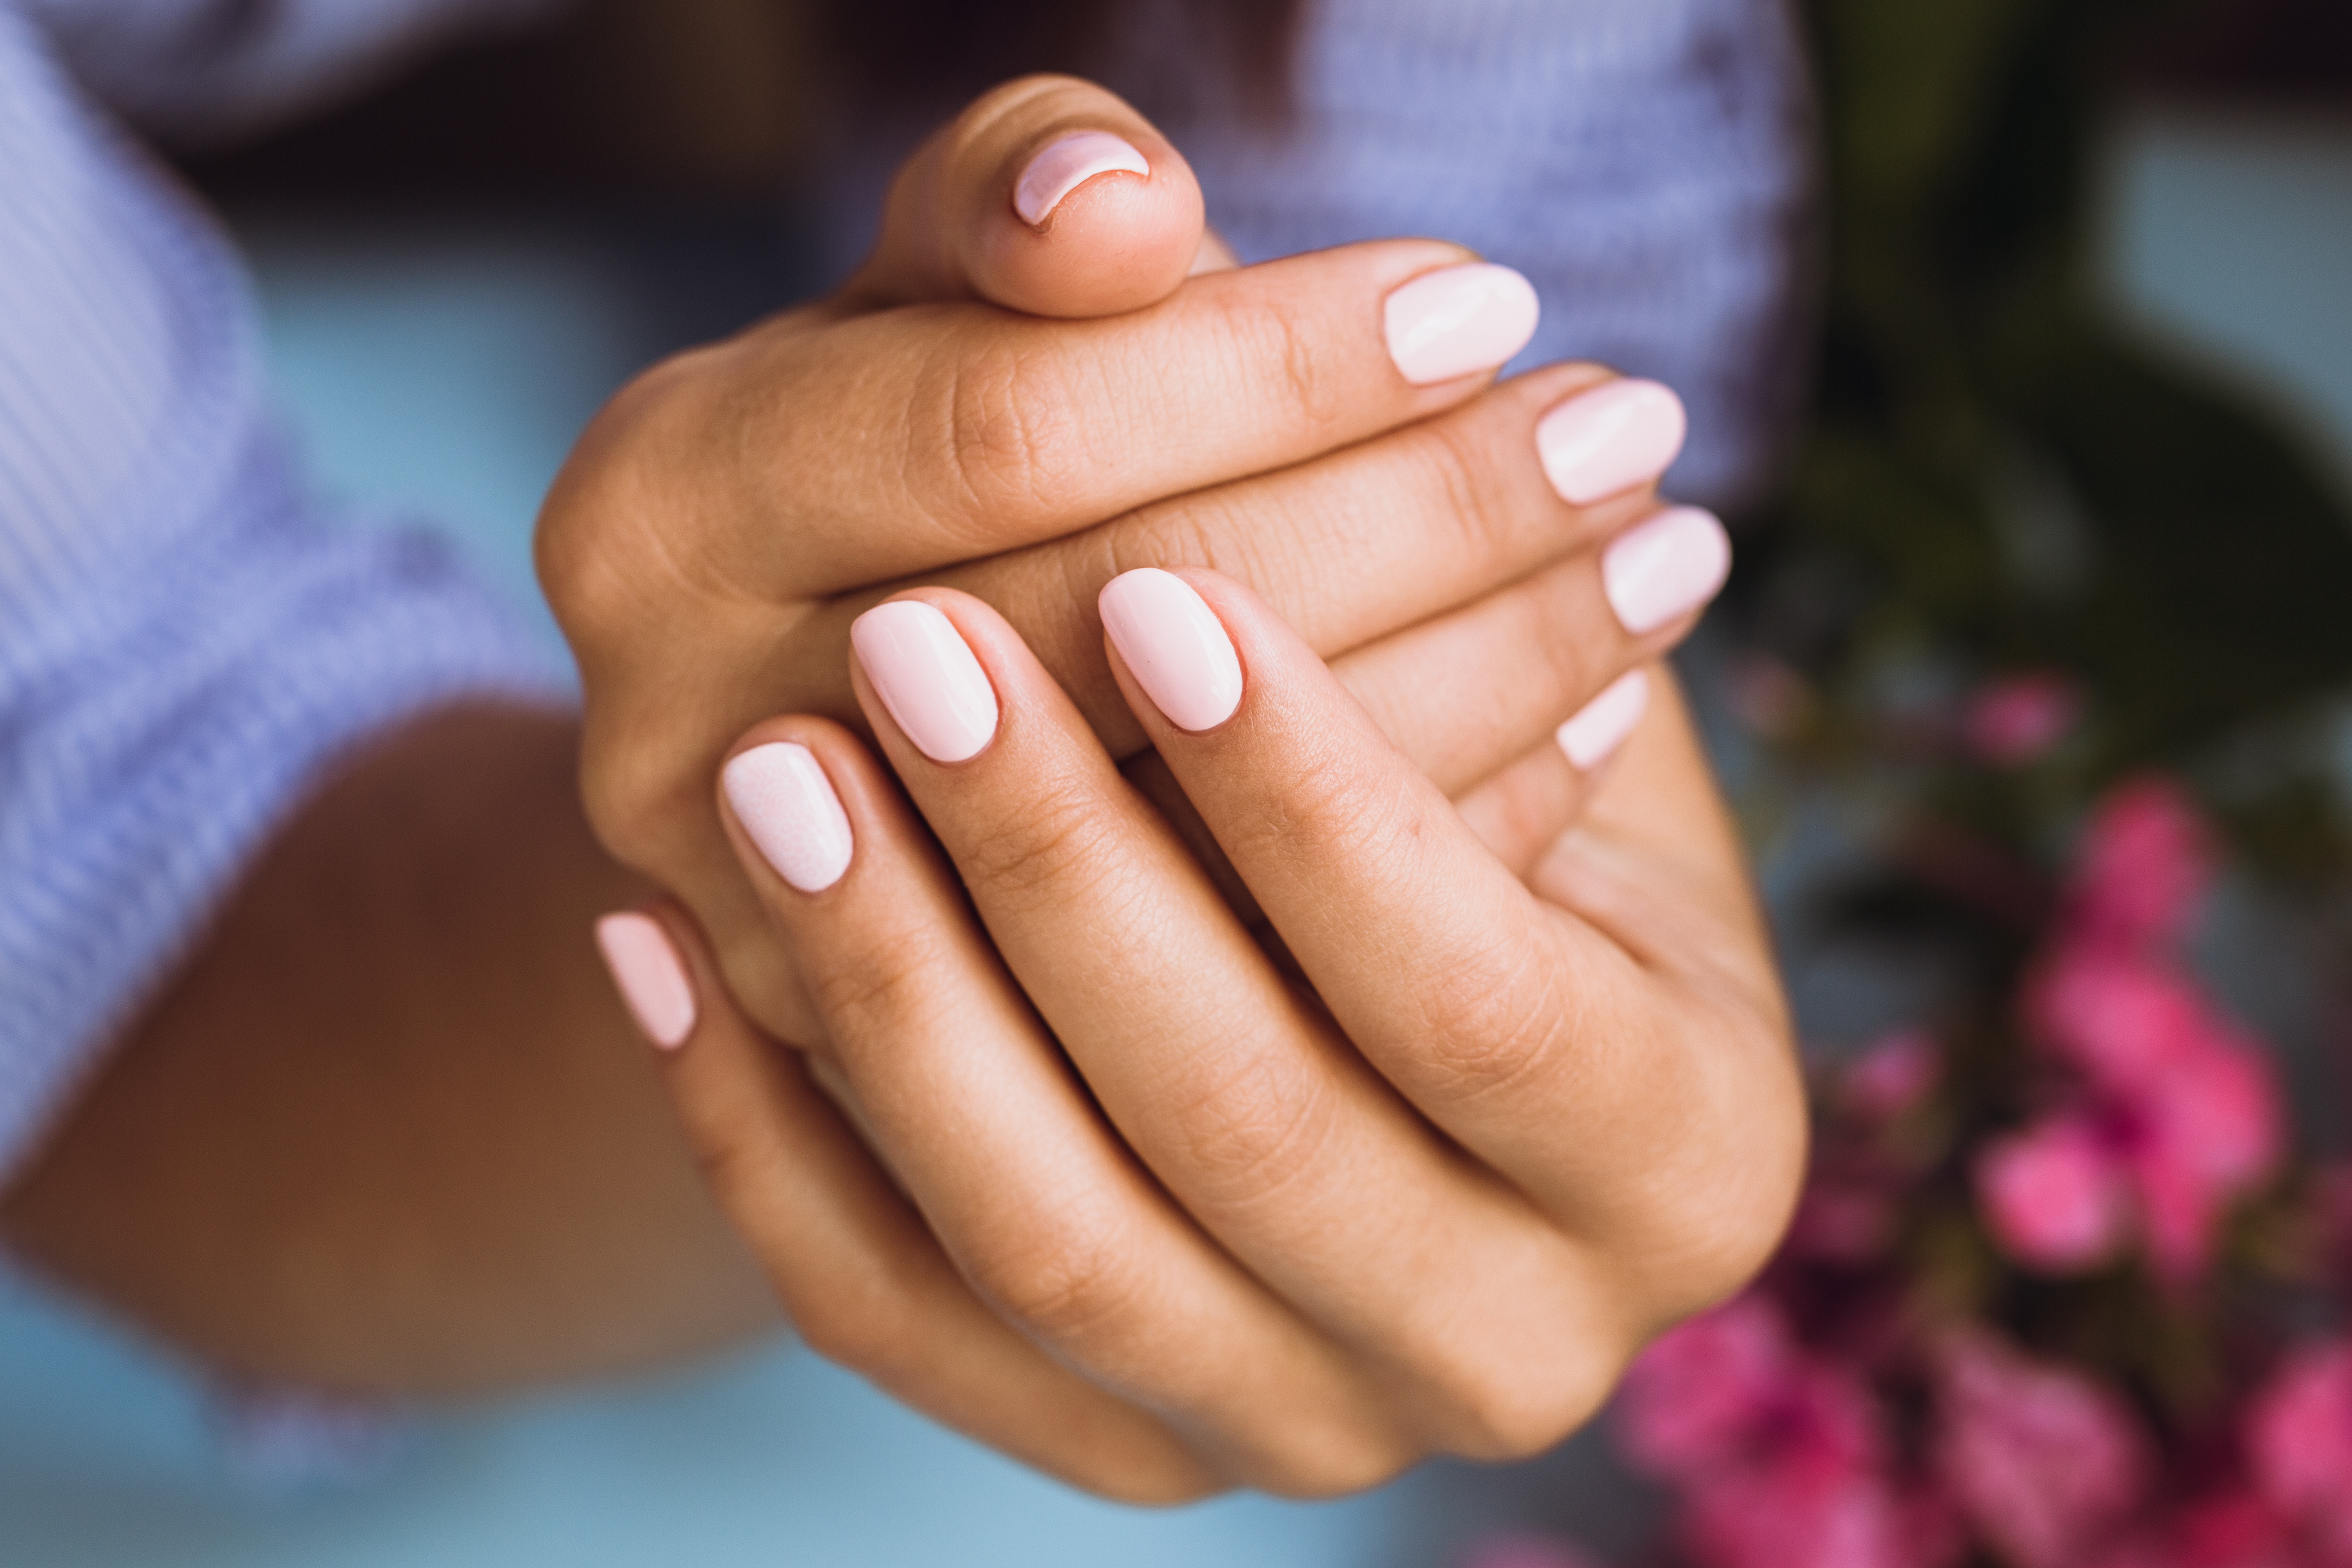 Nail Care 101: Skip The Salon, Save Money And Remove Nail Glue From